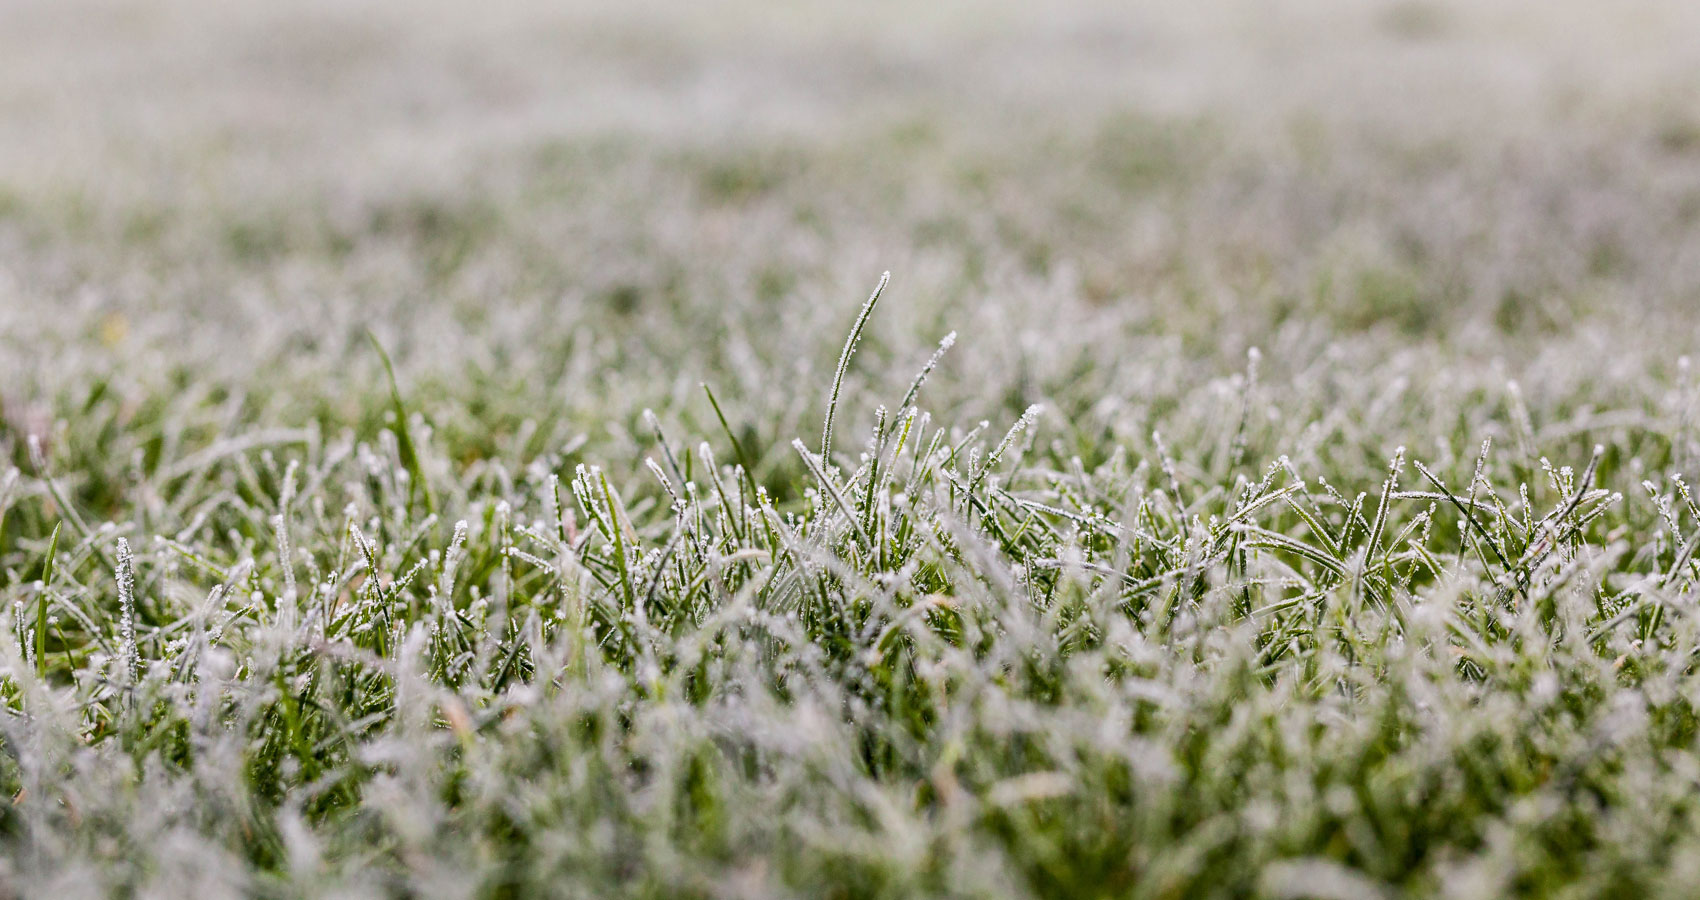 Frost, free verse poetry written by N. K. Hasen at Spillwords.com